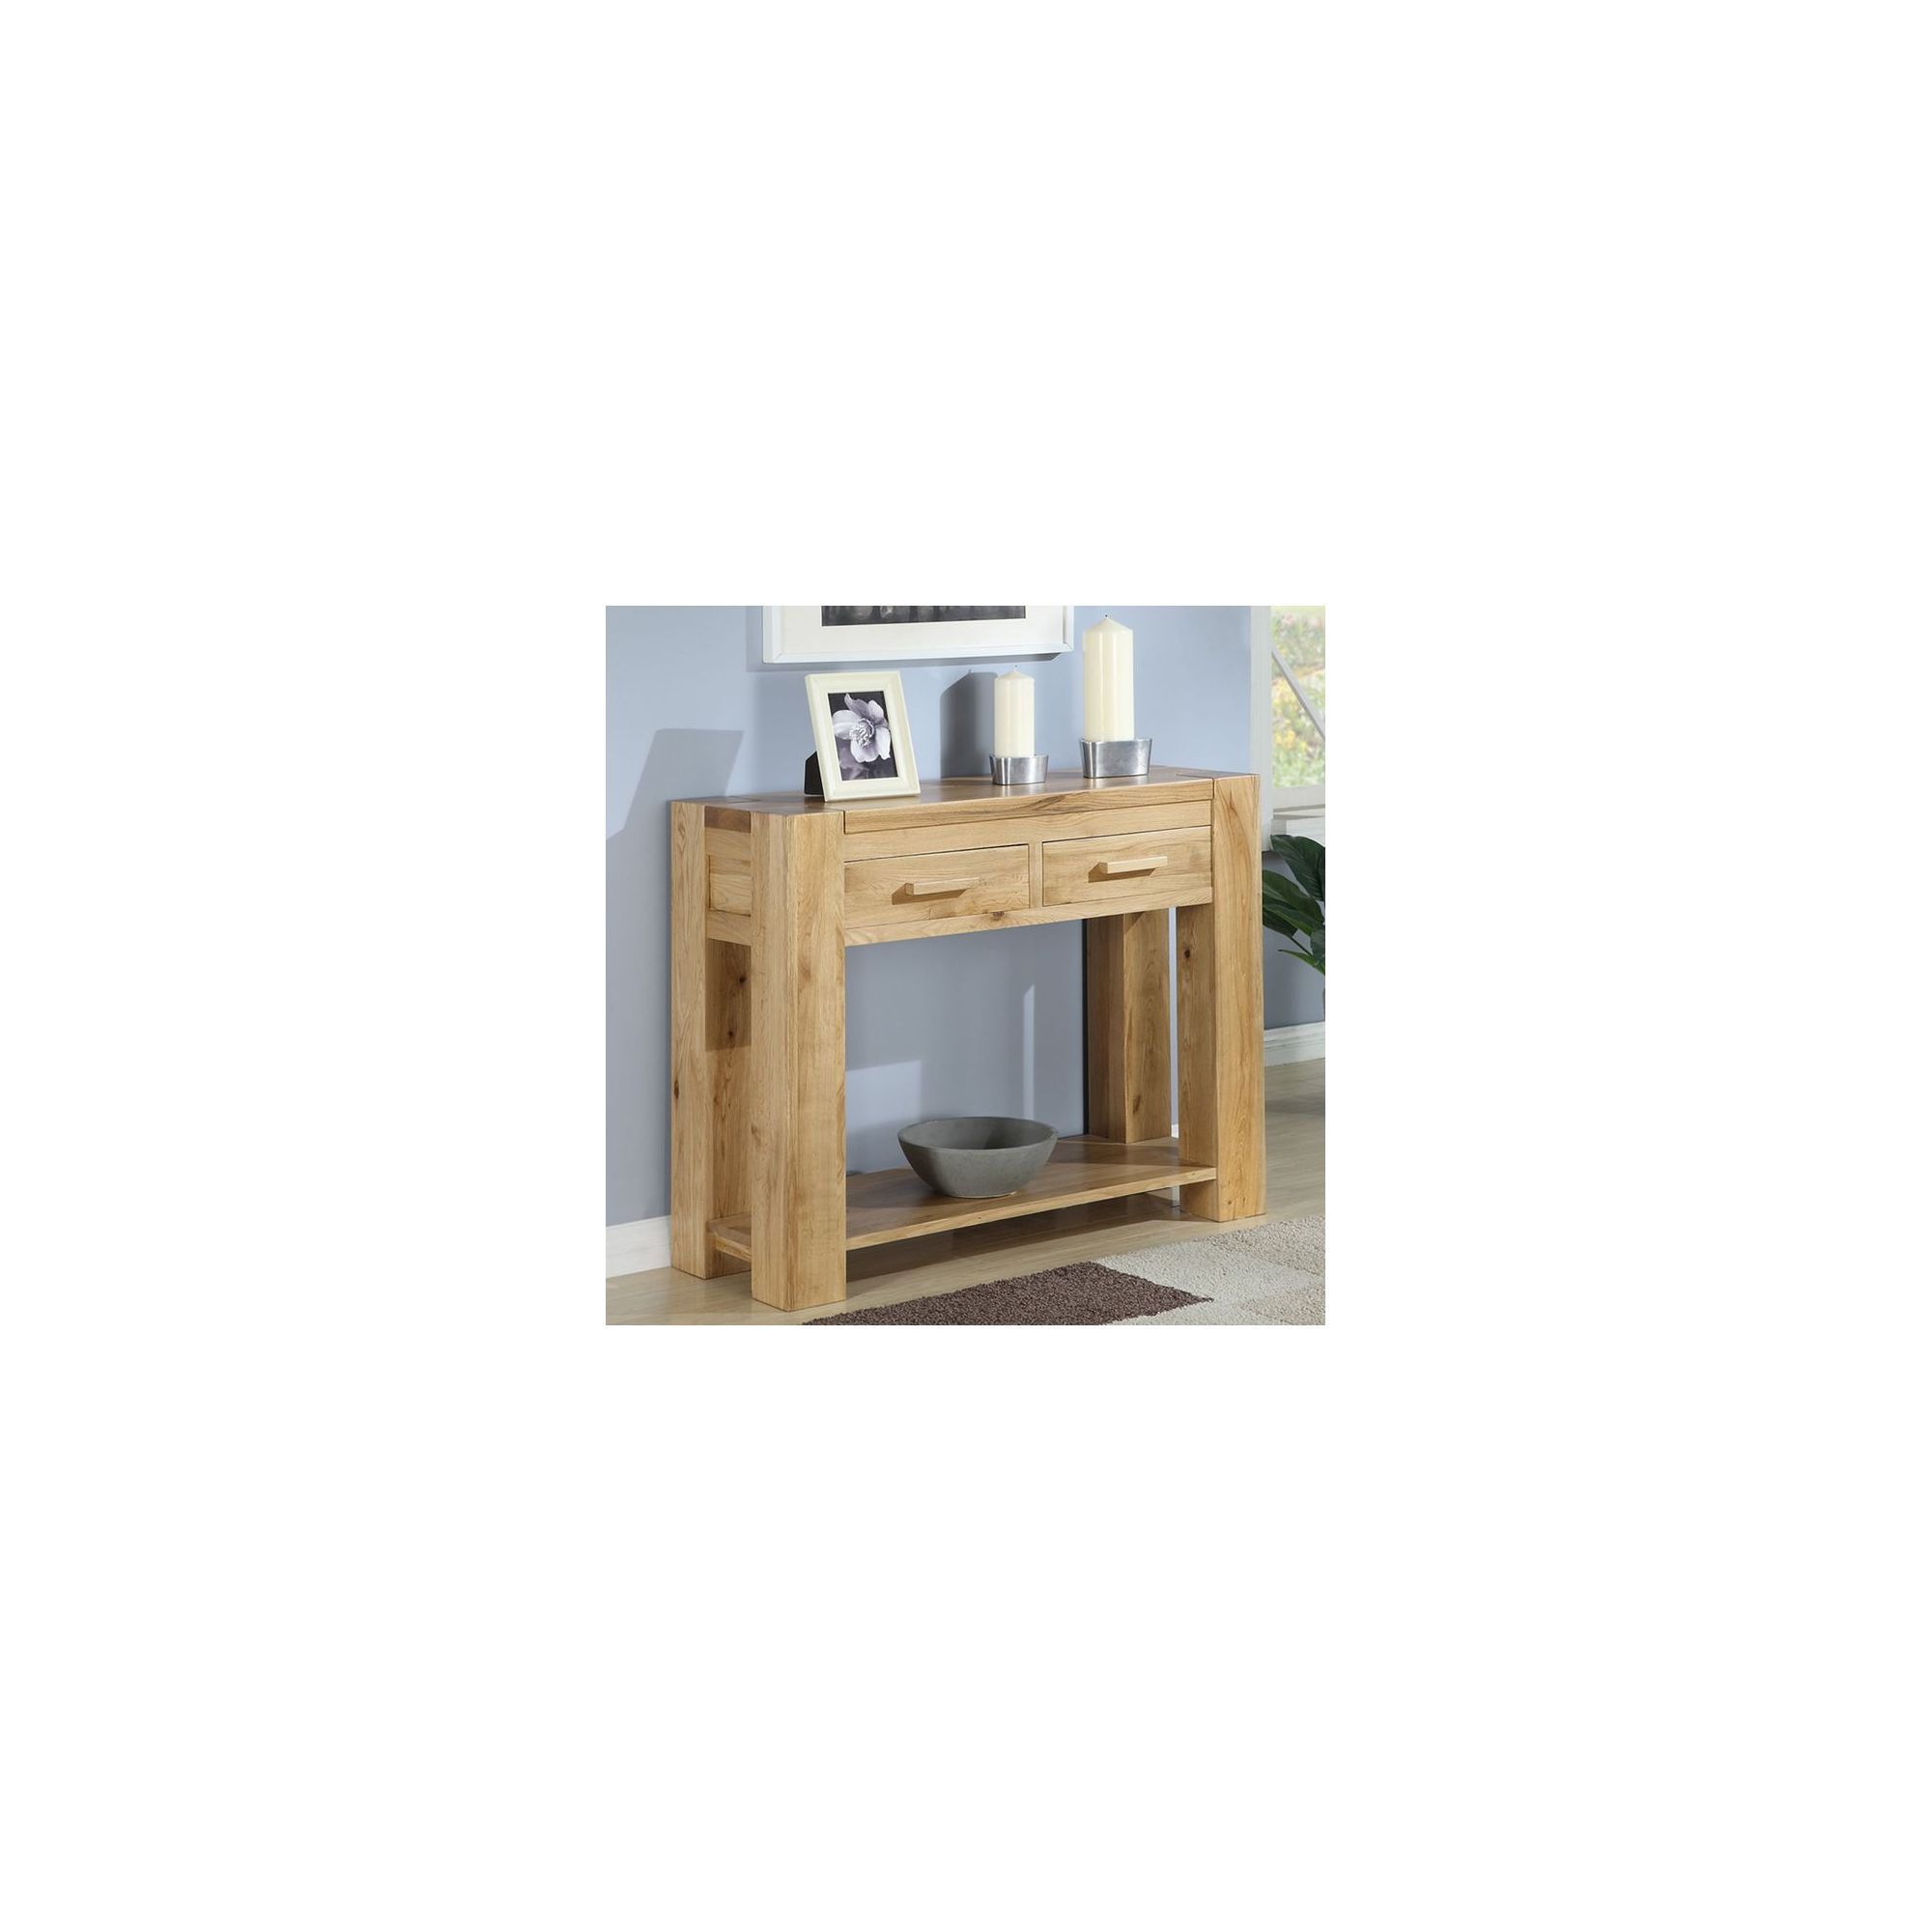 Shankar Enterprises Oslo Console Table at Tesco Direct